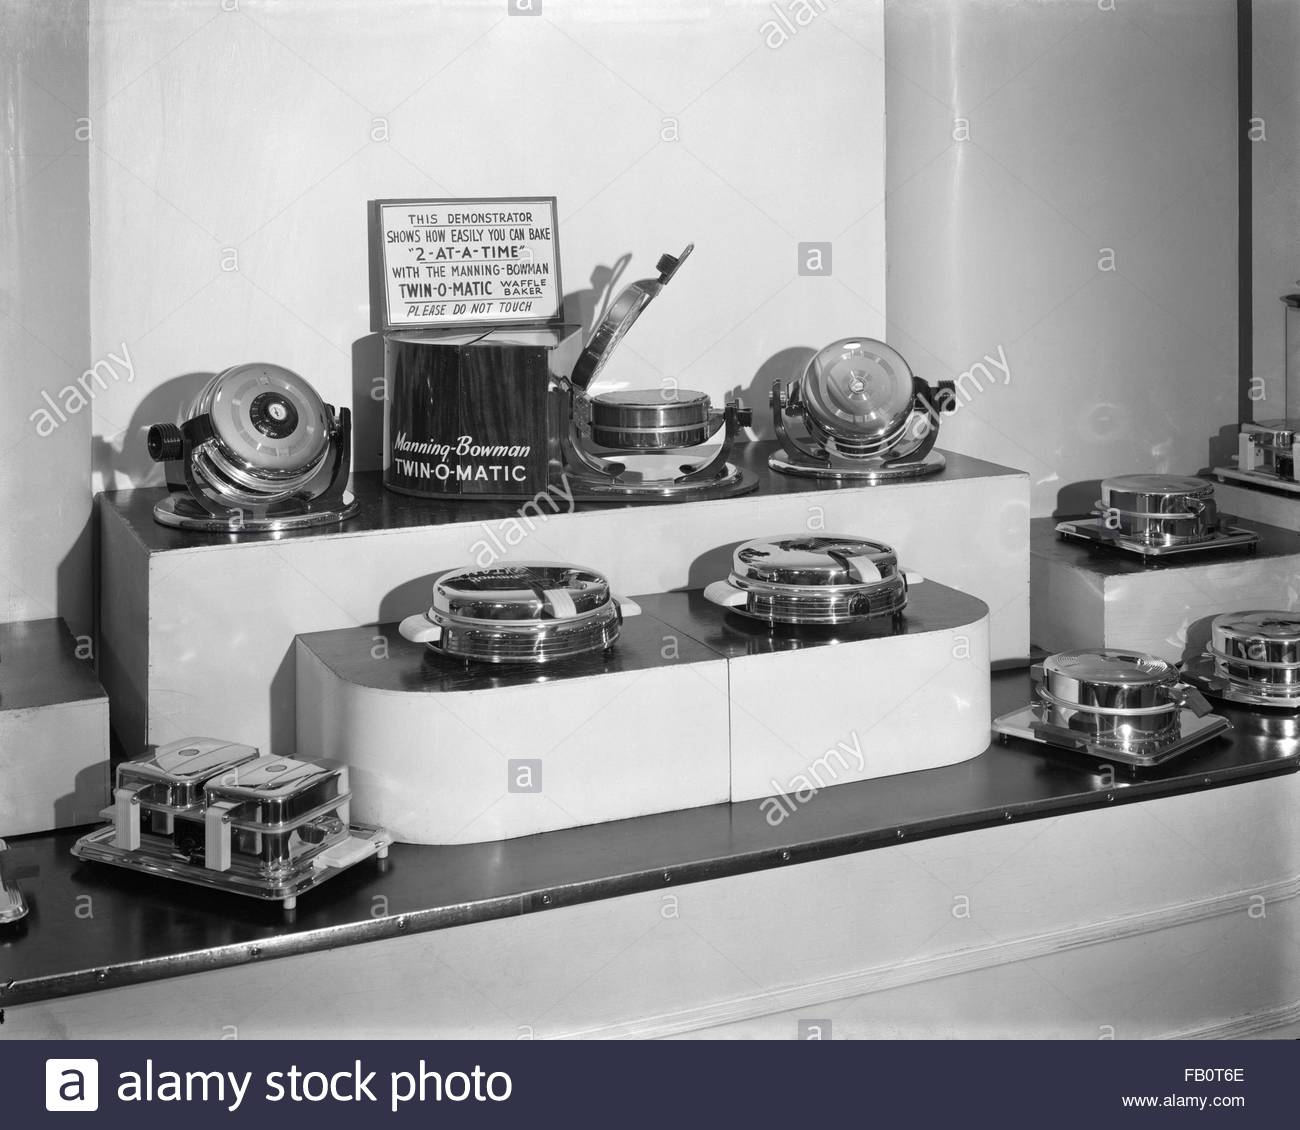 Waffle iron display at Marshall Field and Company, 1941 Jan. 17. Waffle iron display at Marshall Field and Company - Stock Image